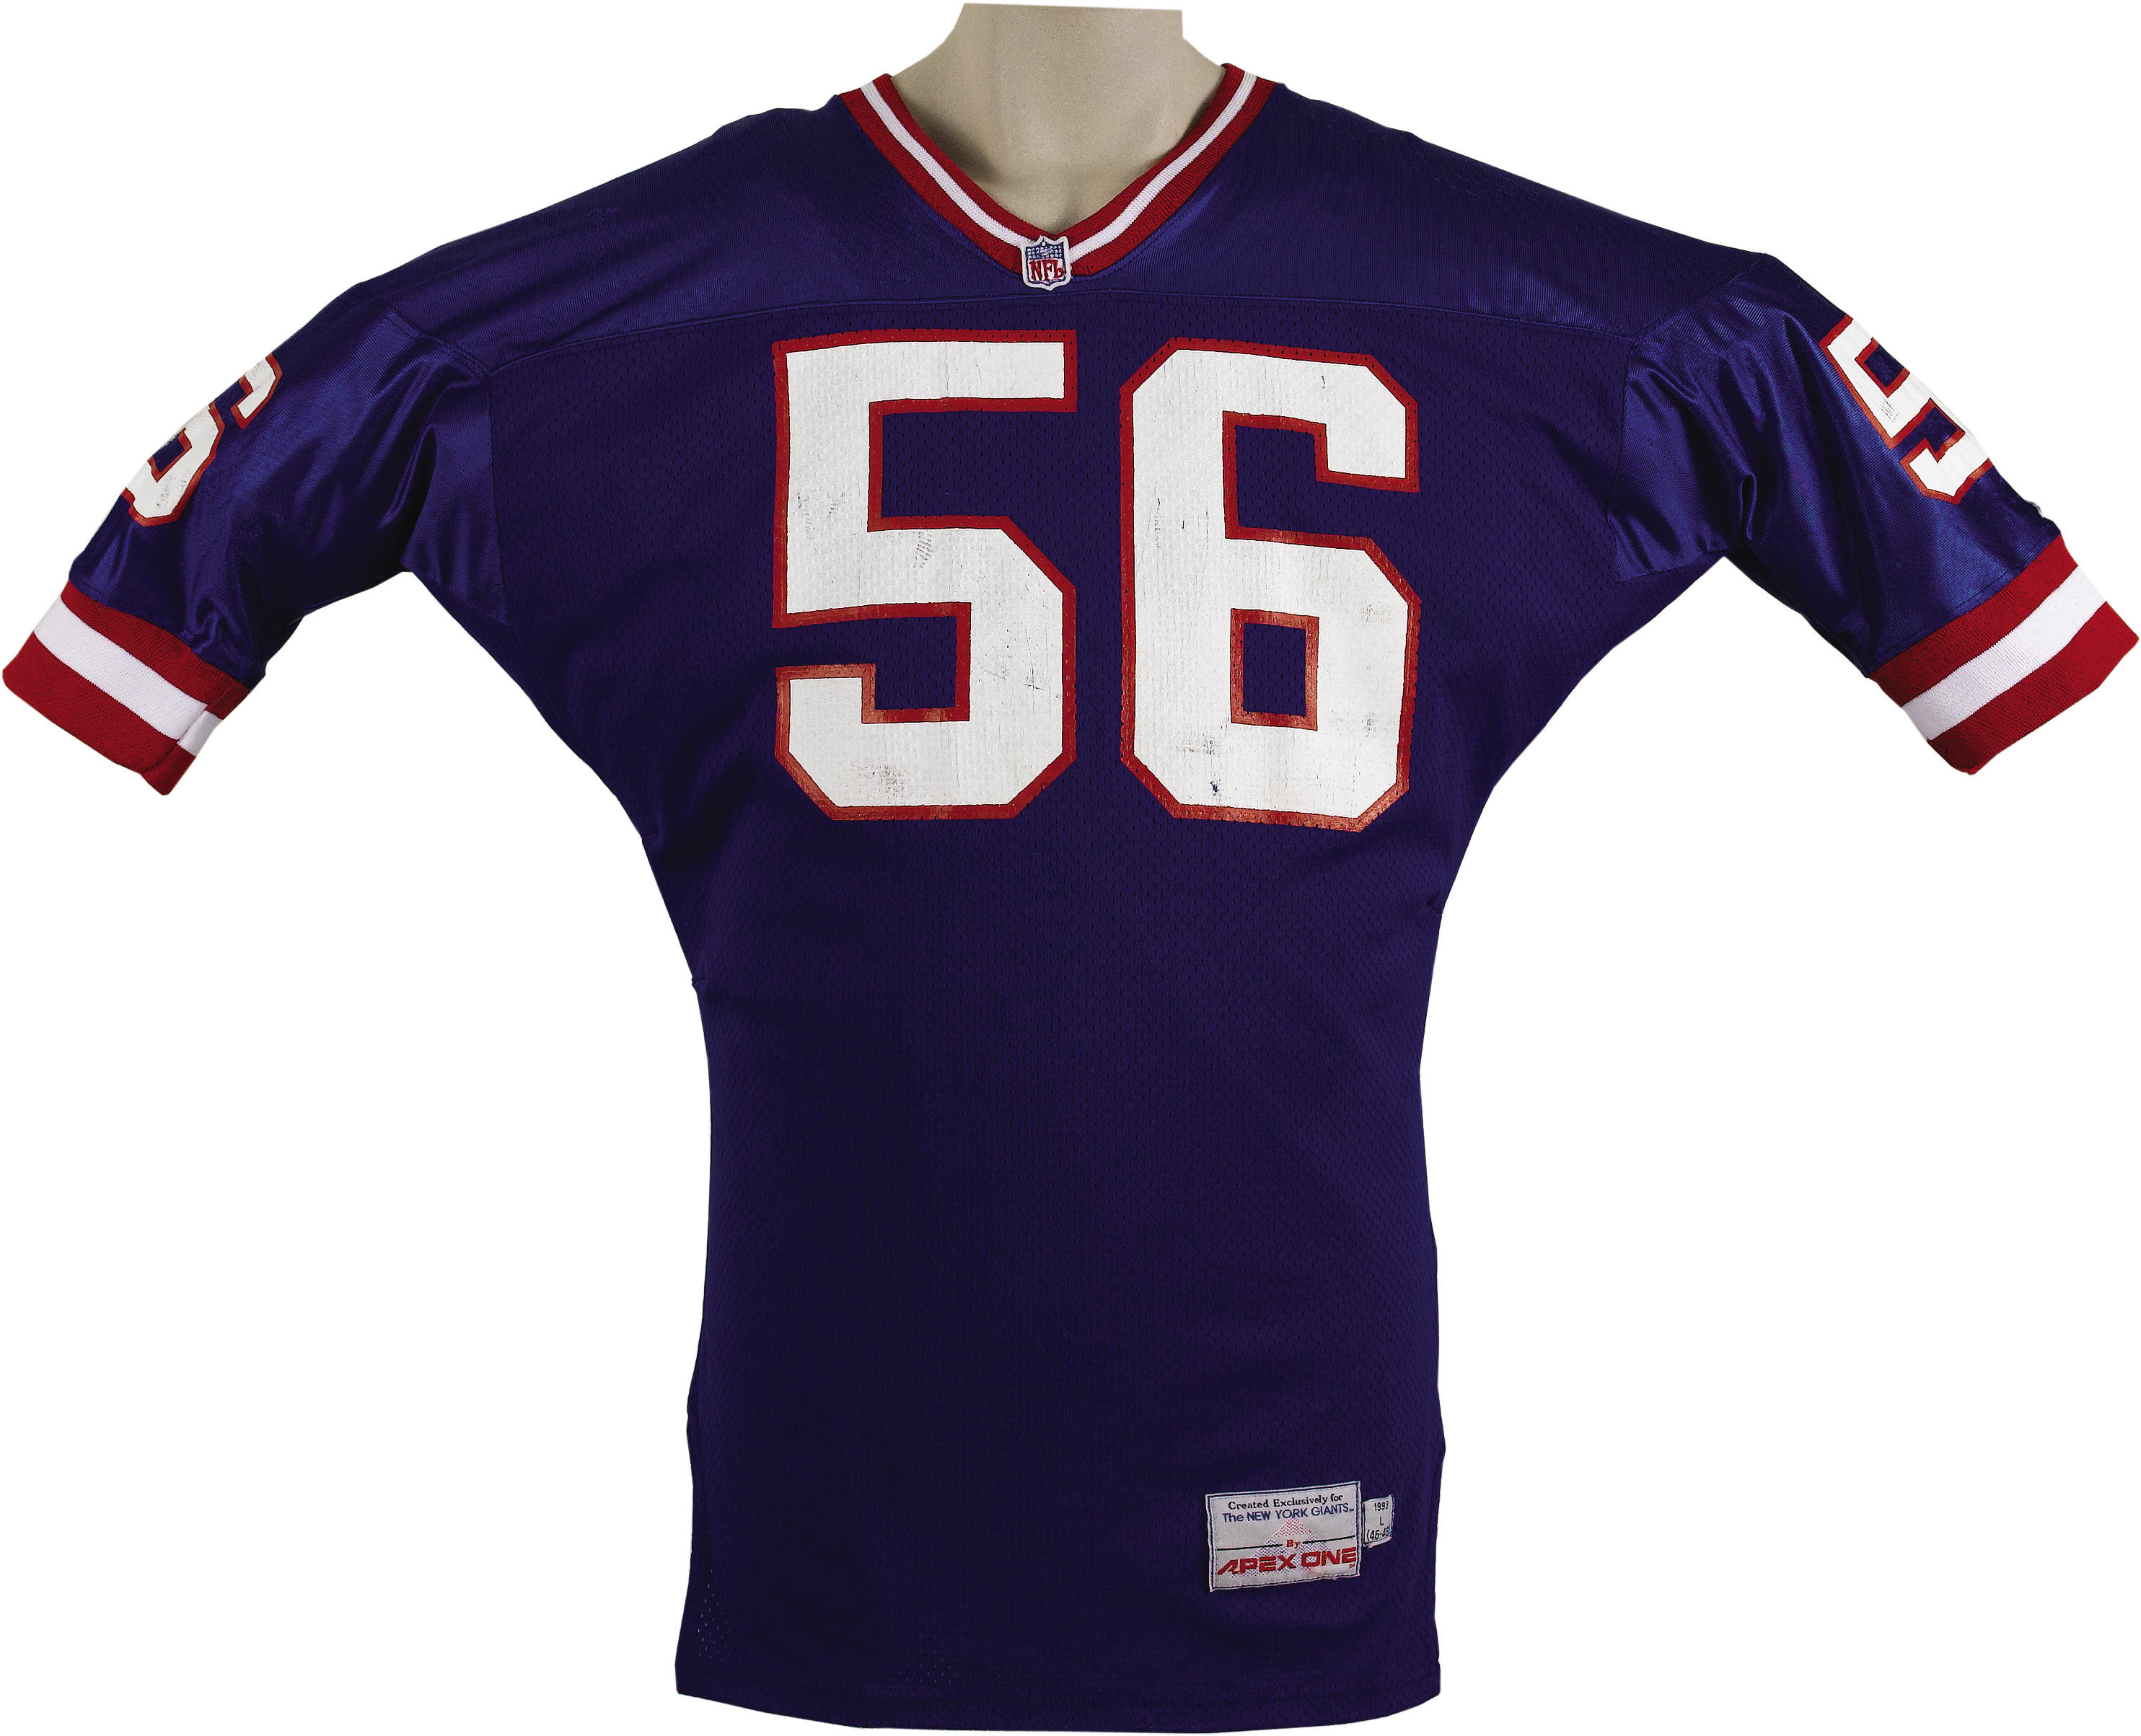 1993 Lawrence Taylor Game Worn Jersey. Perhaps the greatest | Lot ...